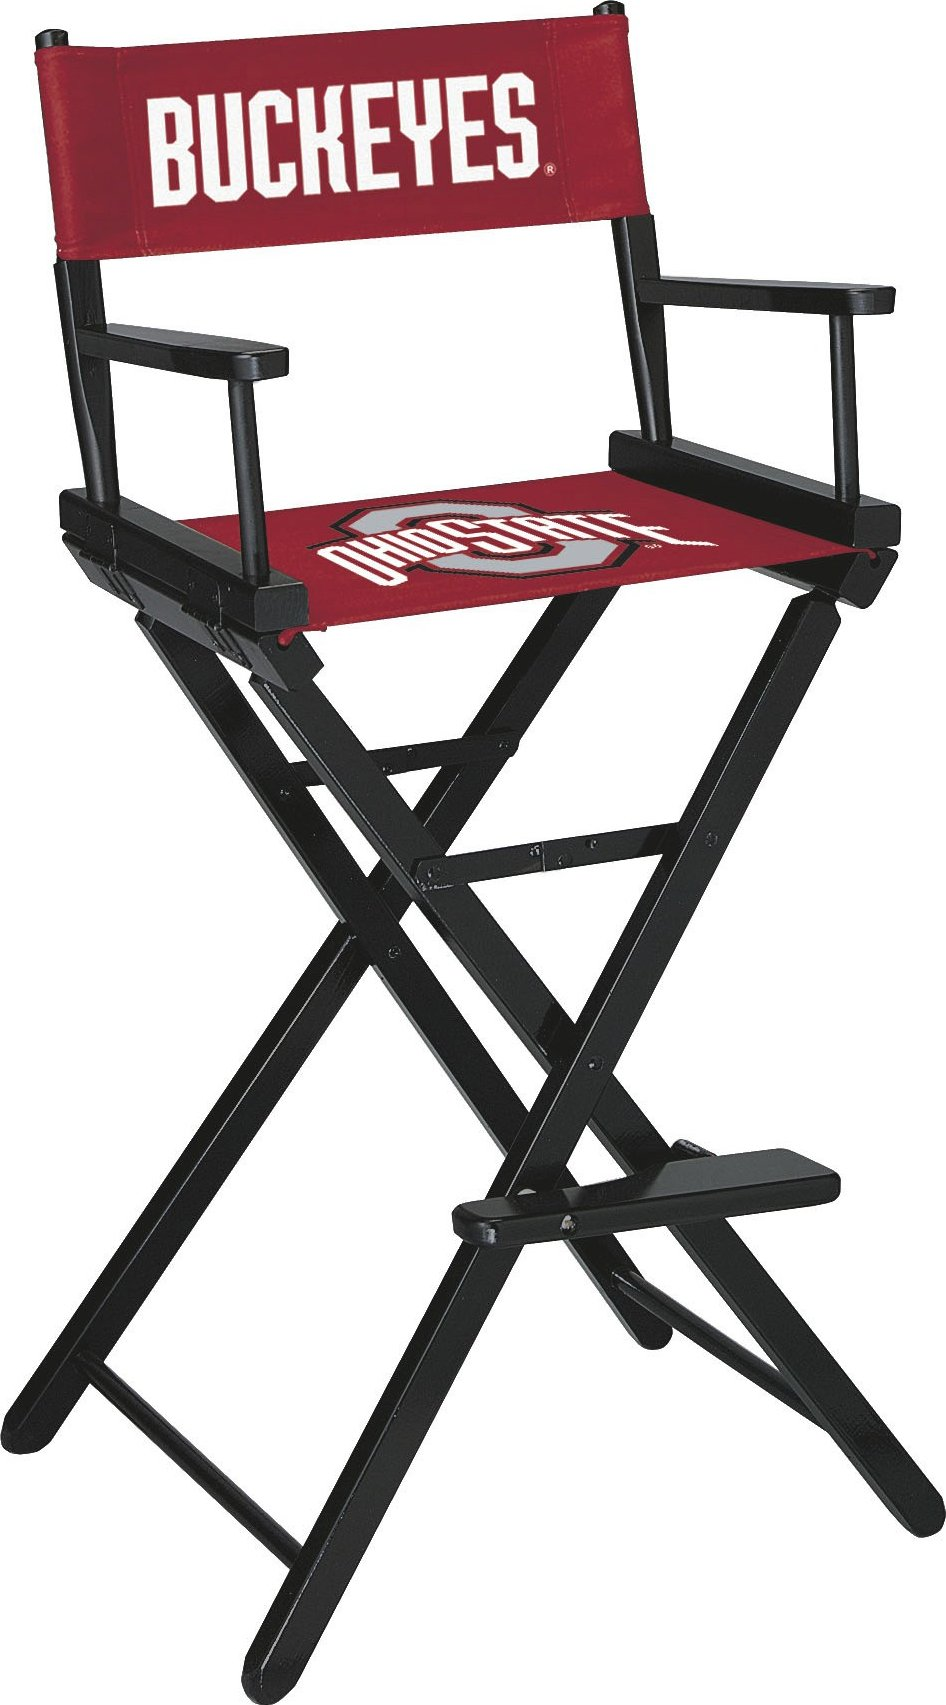 Imperial Officially Licensed NCAA Merchandise: Directors Chair (Tall, Bar Height), Ohio State Buckeyes